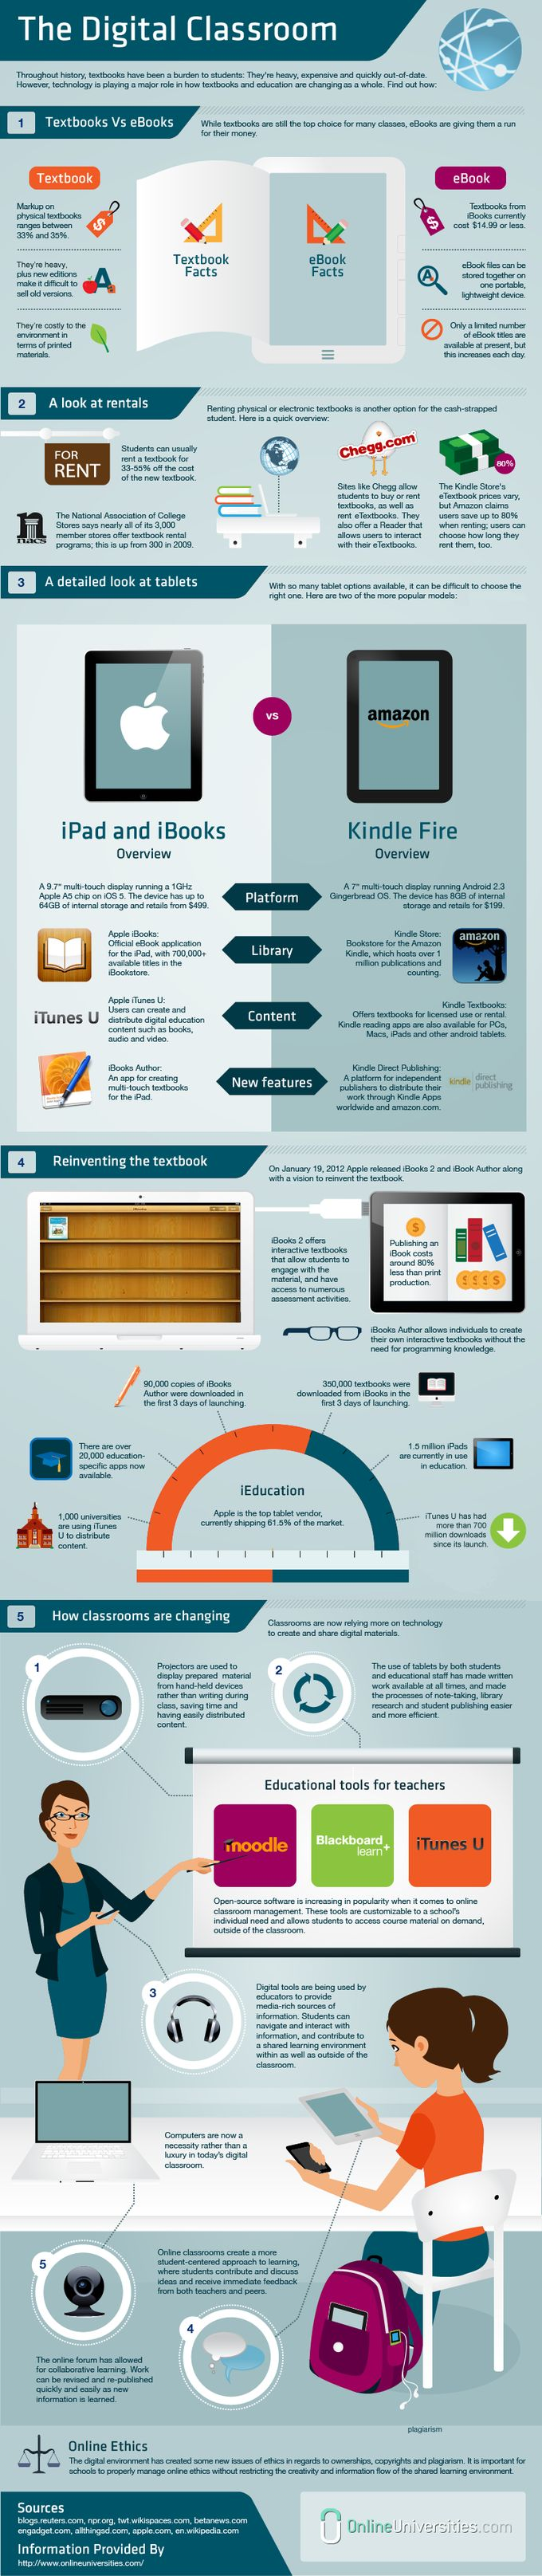 The 5 Important Elements of The 21st Century Classroom ~ Educational Technology and Mobile Learning